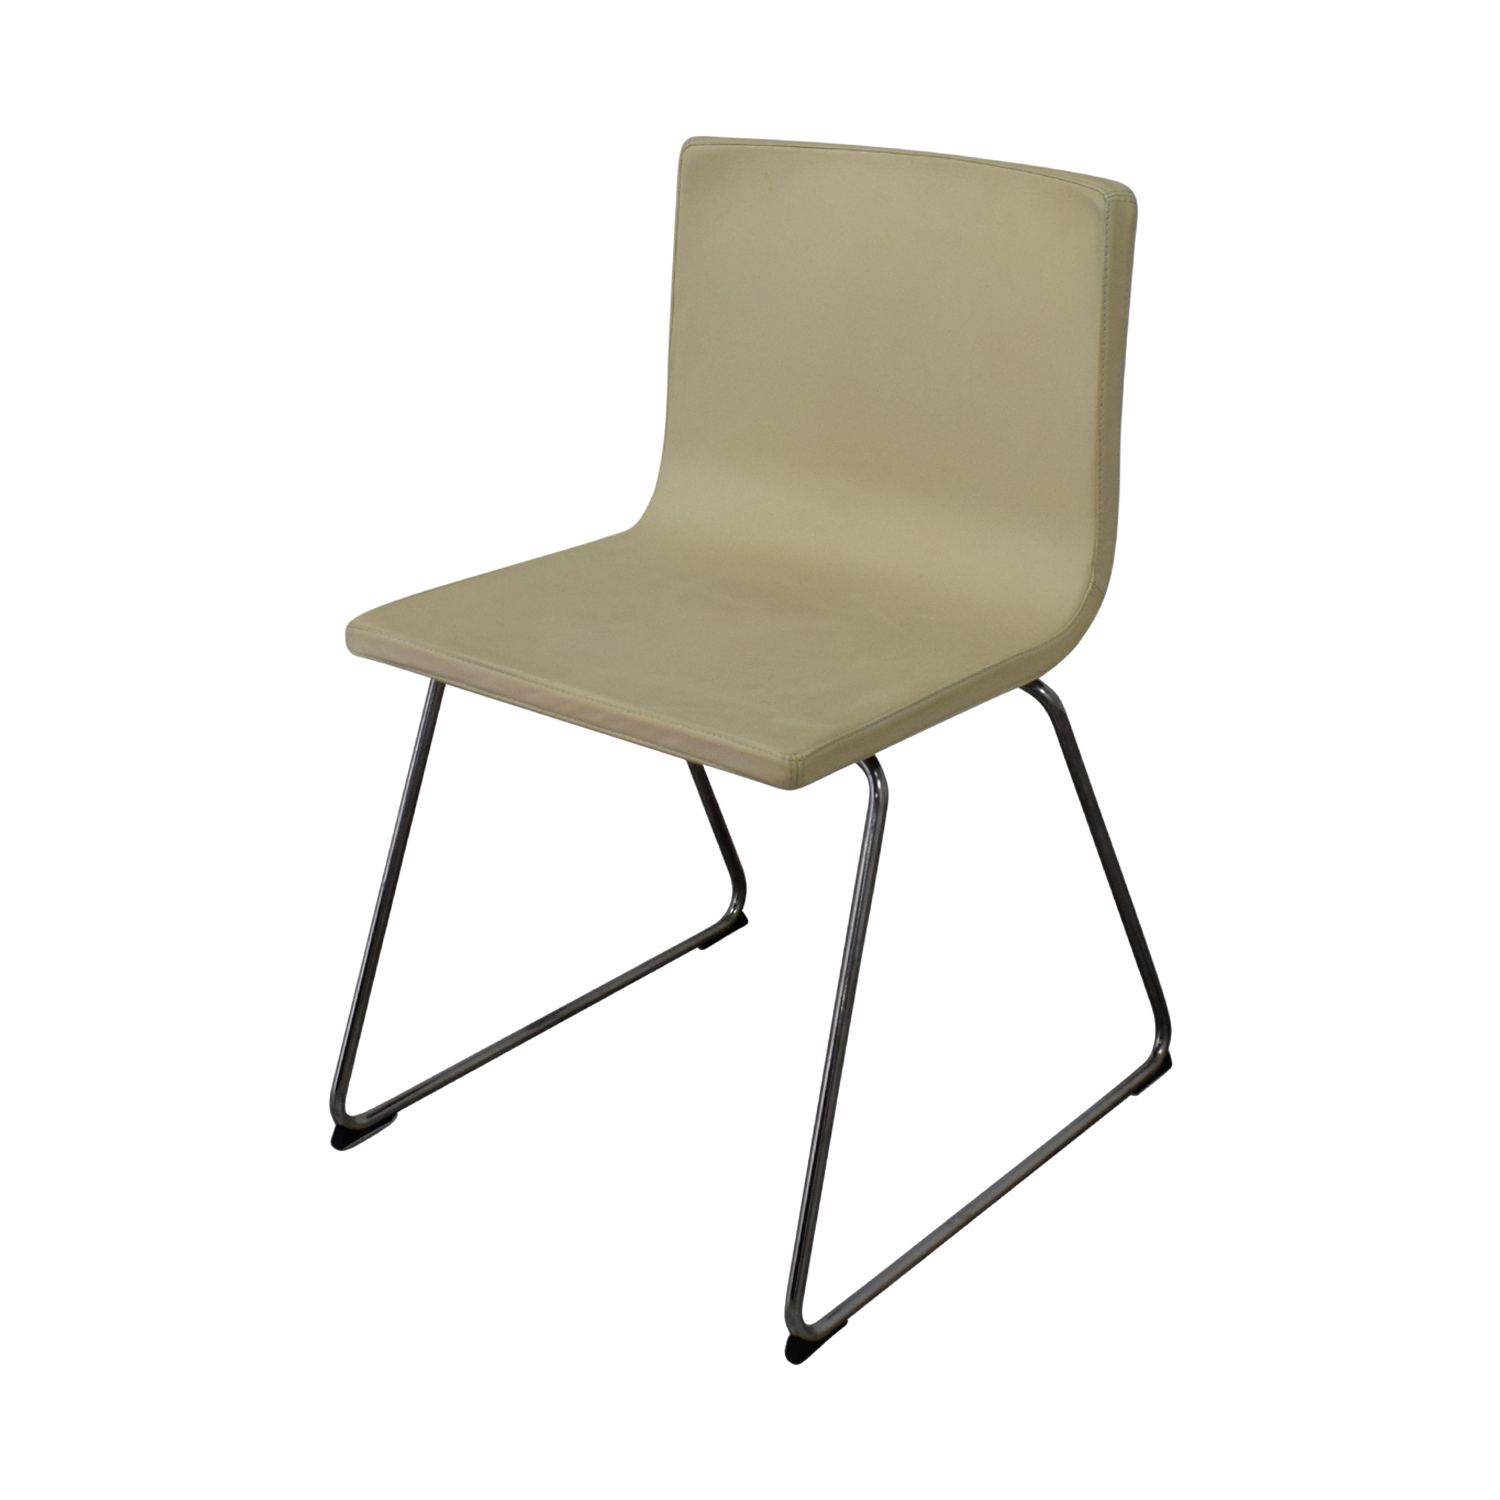 84 Off Ikea Ikea Bernhard Leather Dining Chairs Chairs